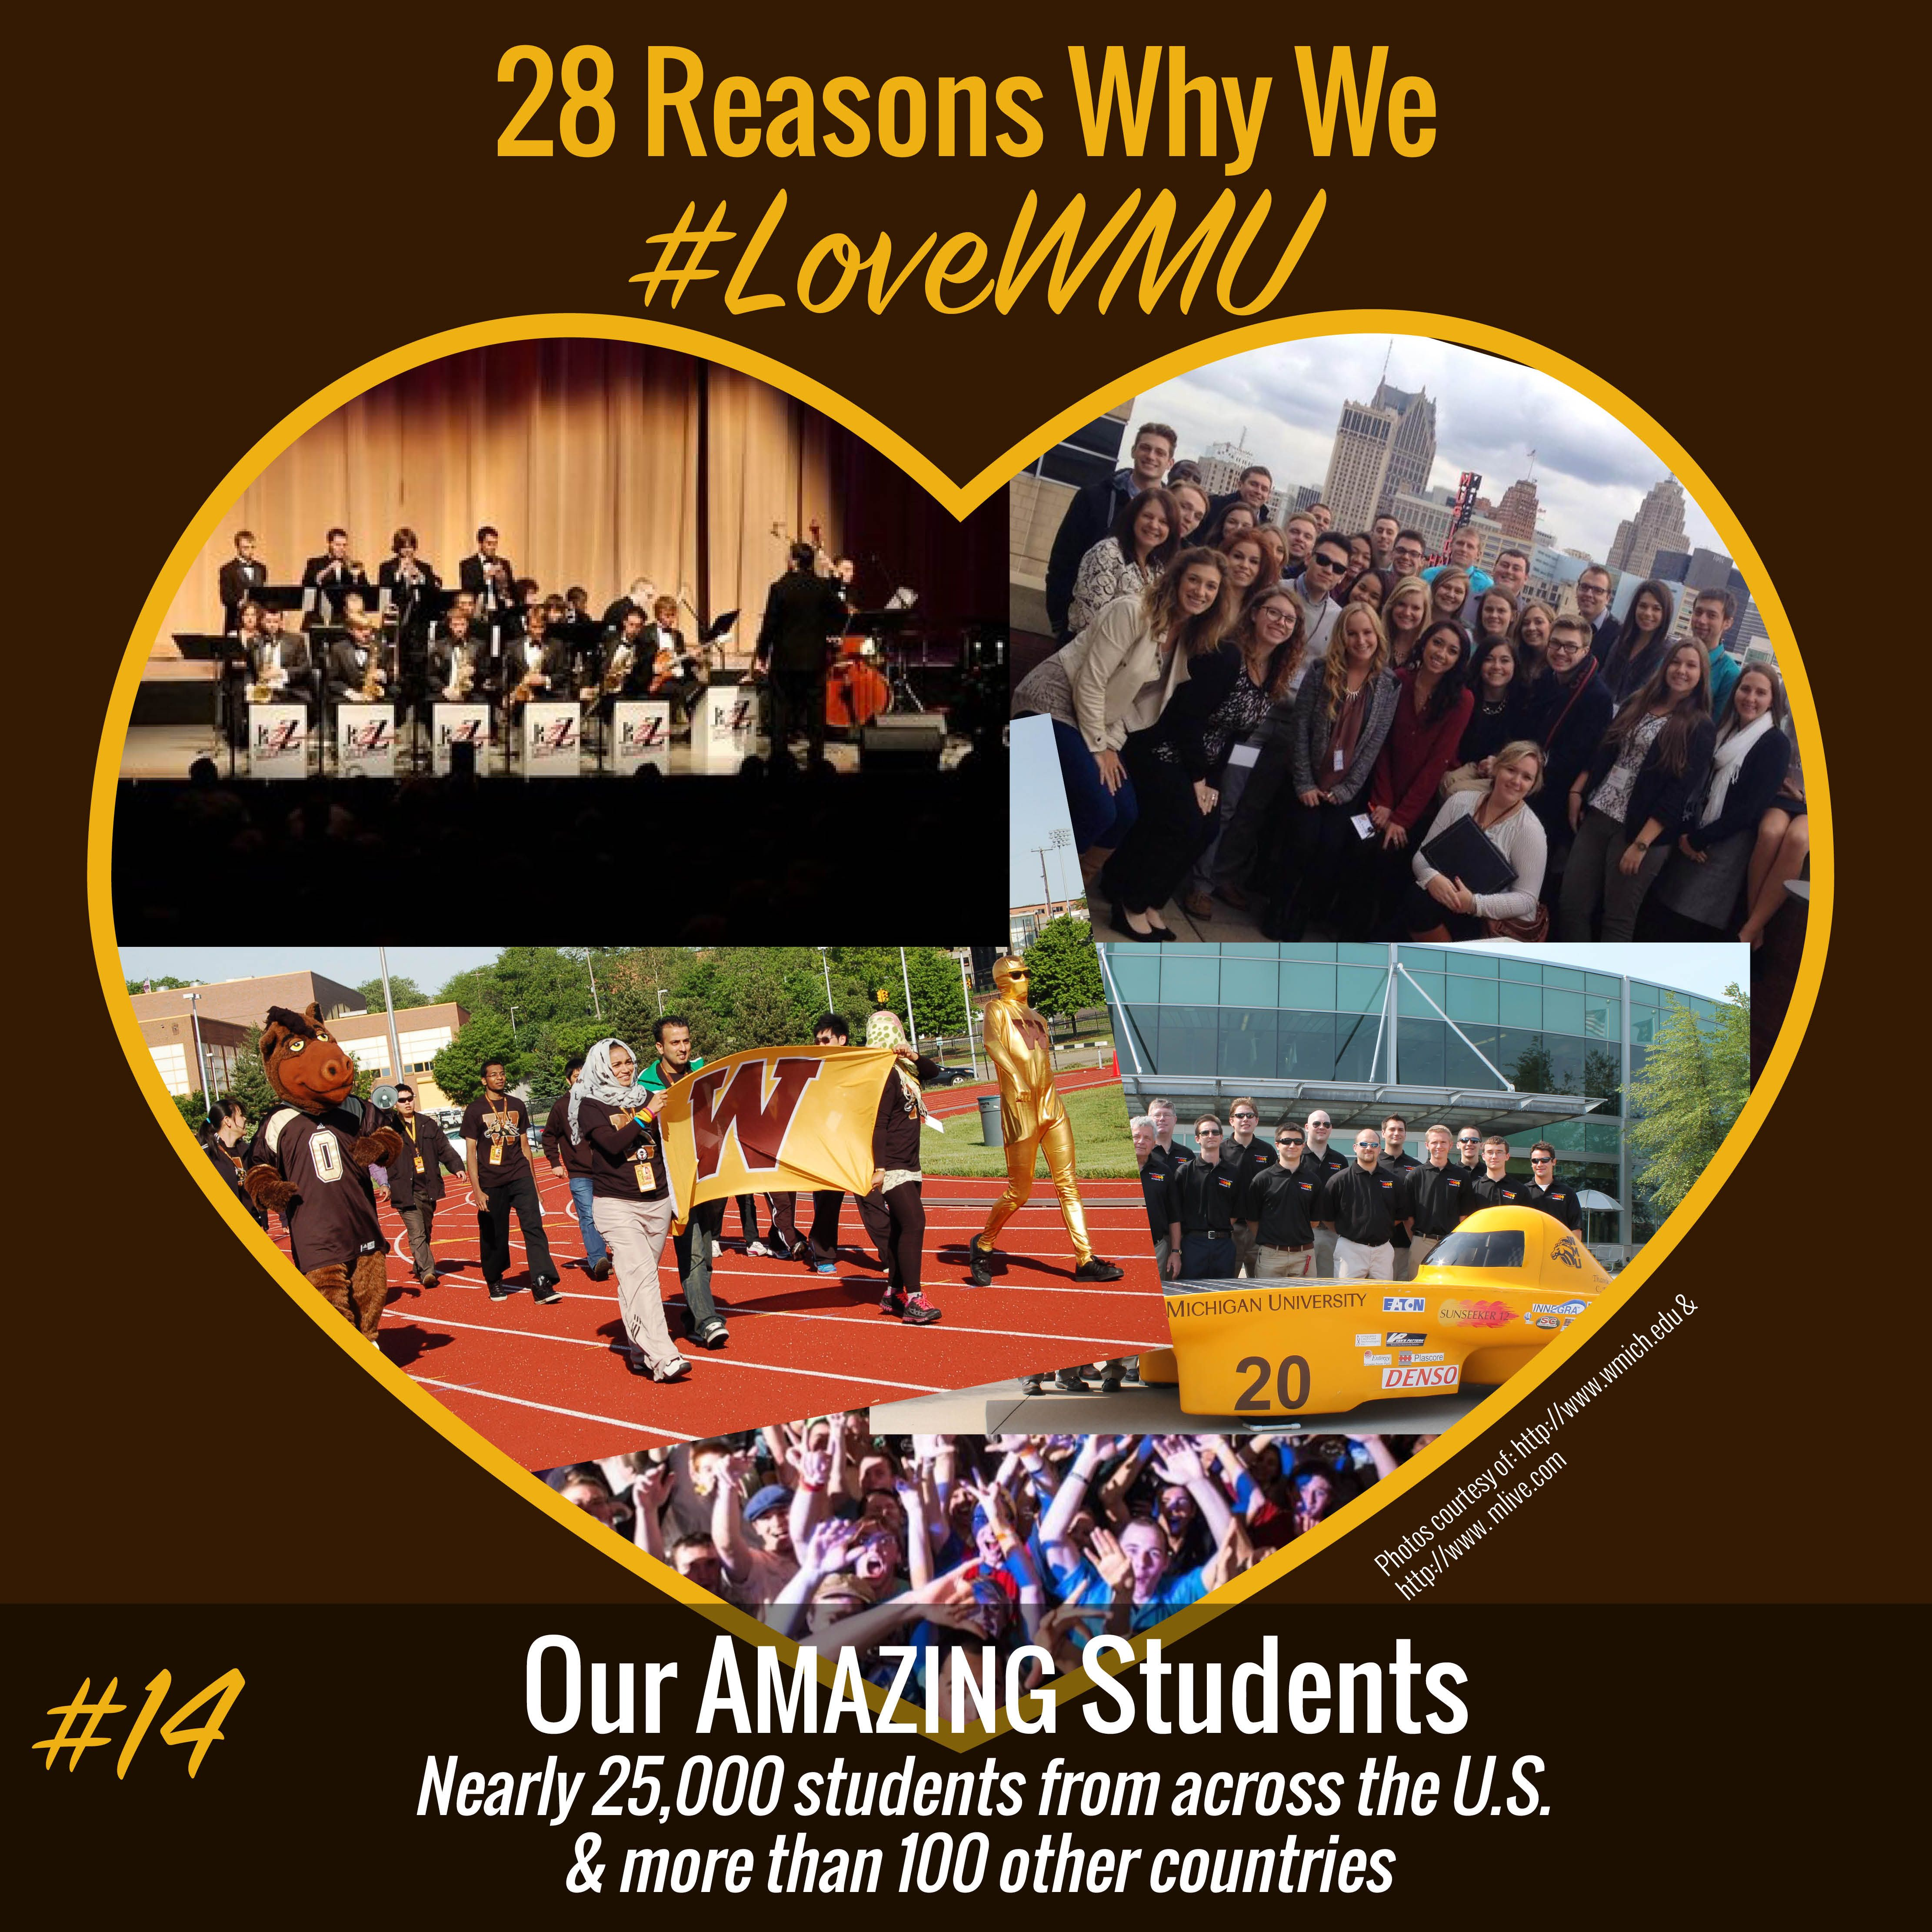 Reason #14 we #LoveWMU: Our students! All Broncos know that our students are what makes #WMU amazing. #GoWest